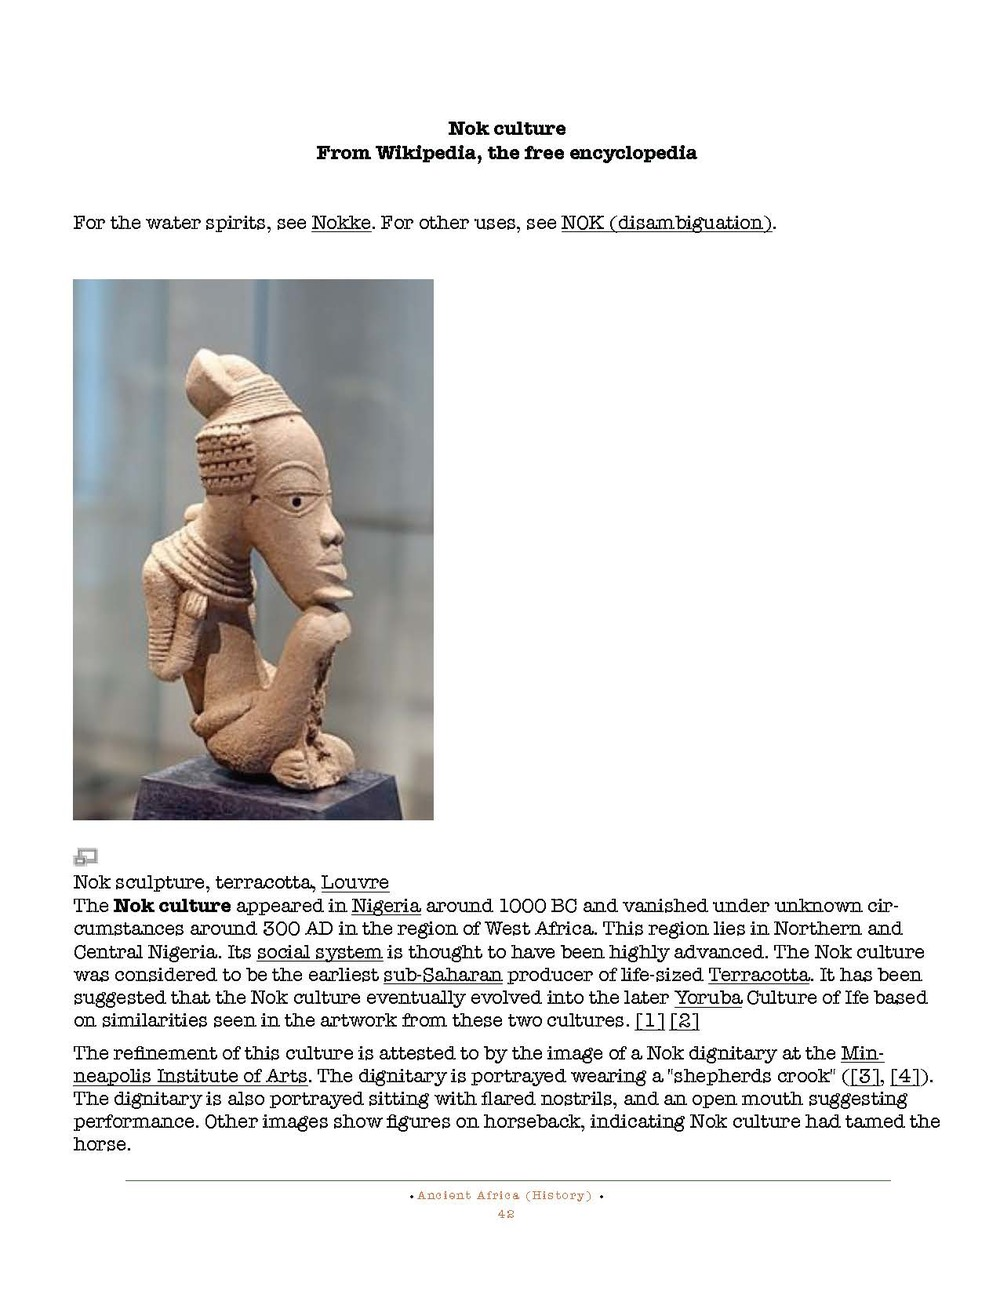 HOCE- Ancient Africa Notes_Page_042.jpg